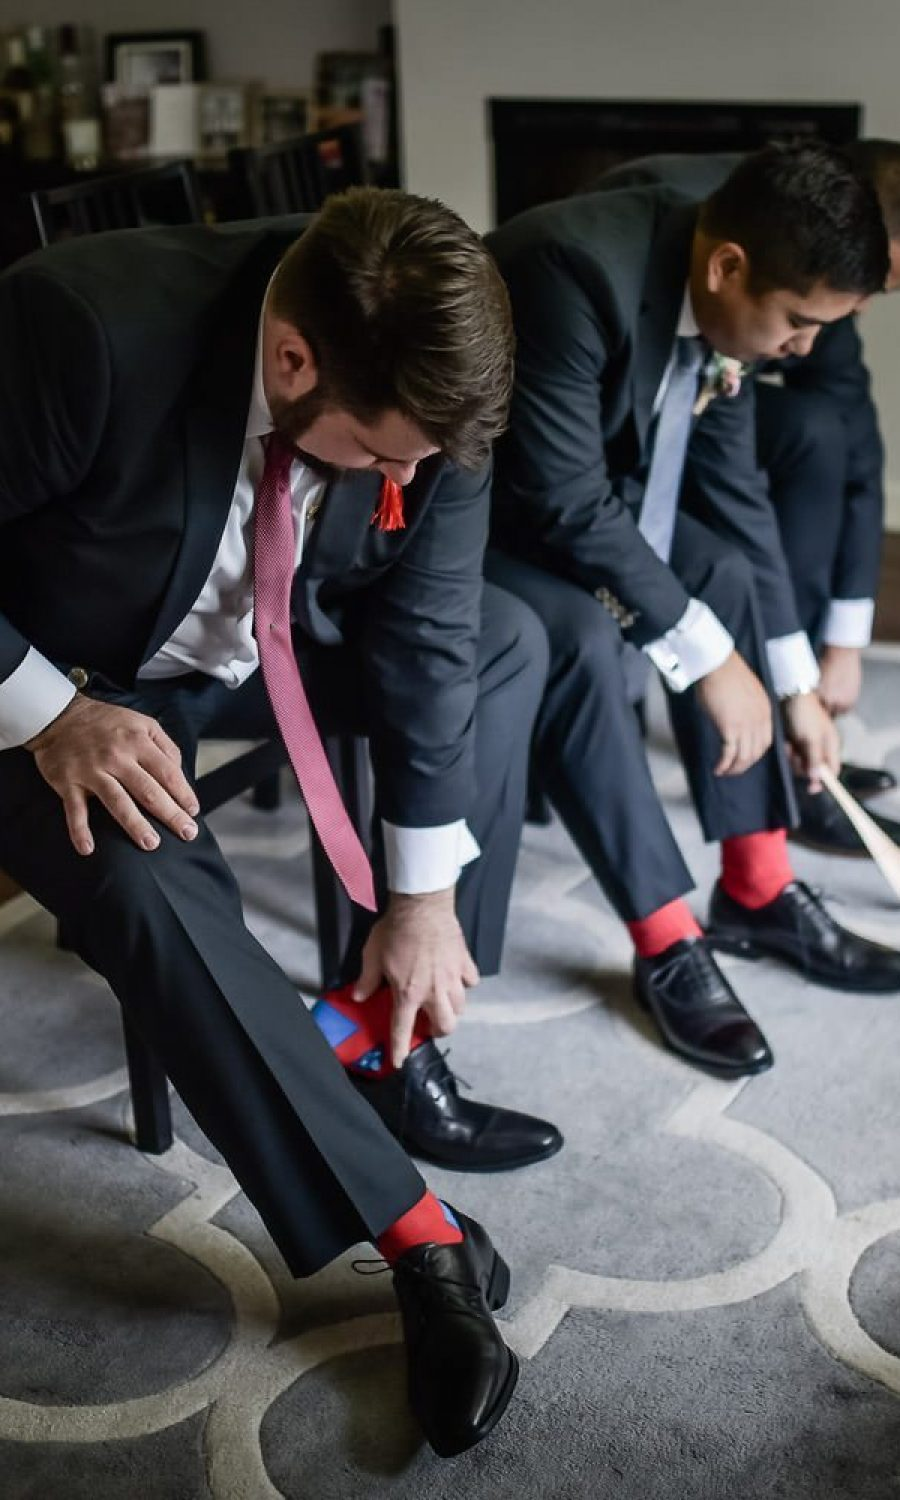 wedding at edmonton oilfield technical society. Groom getting ready. colorful socks.